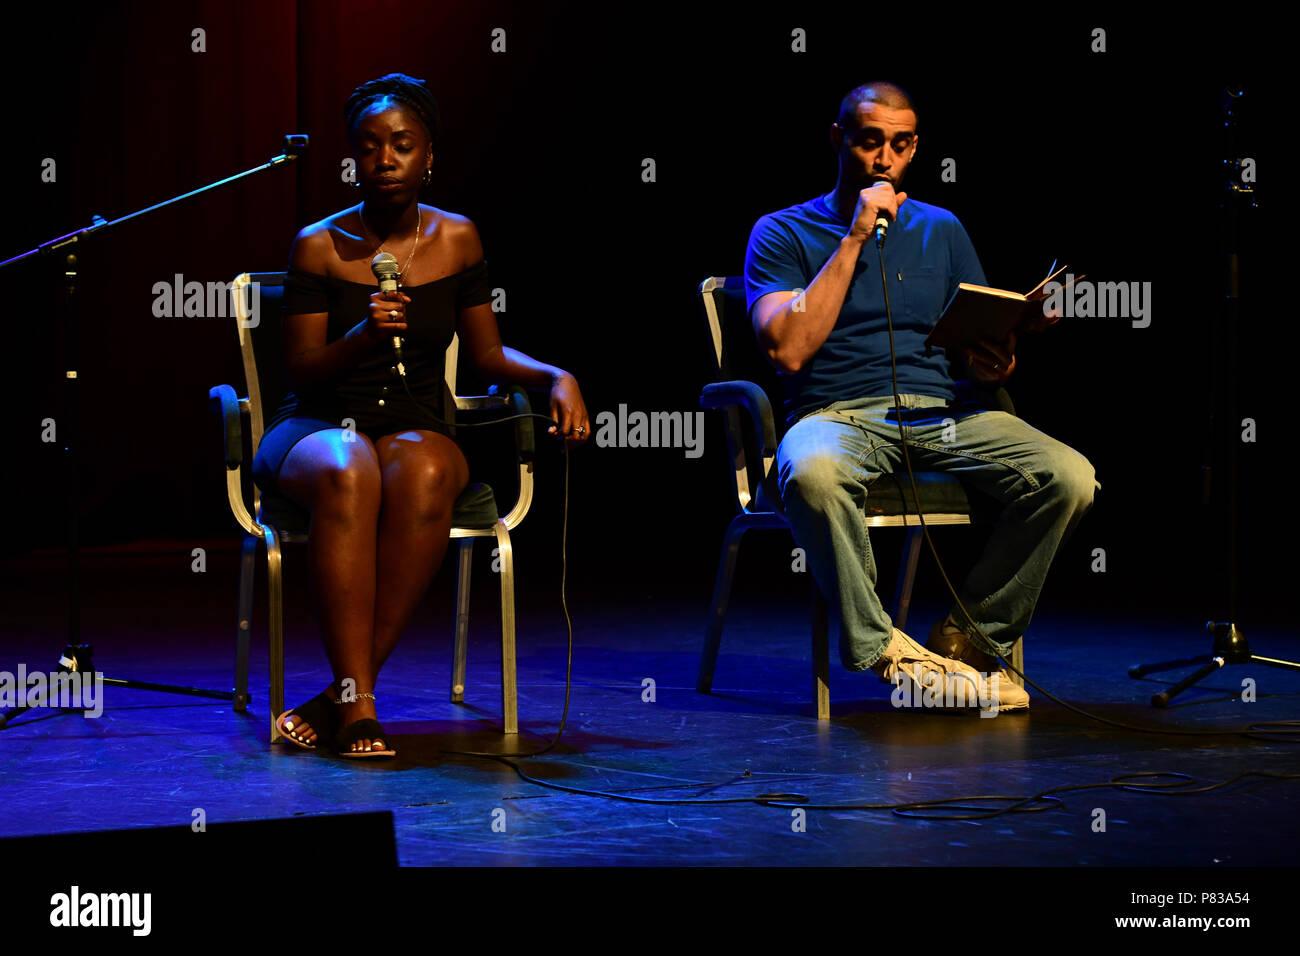 London, UK. 8th July 2018. Lowkey musician preforms at the Just Say No - Artists Against Trump & War host by Stop the War Coalition, Trump is not welcome in the UK at The Shaw Theatre on 8th July 2018. Credit: Picture Capital/Alamy Live News - Stock Image